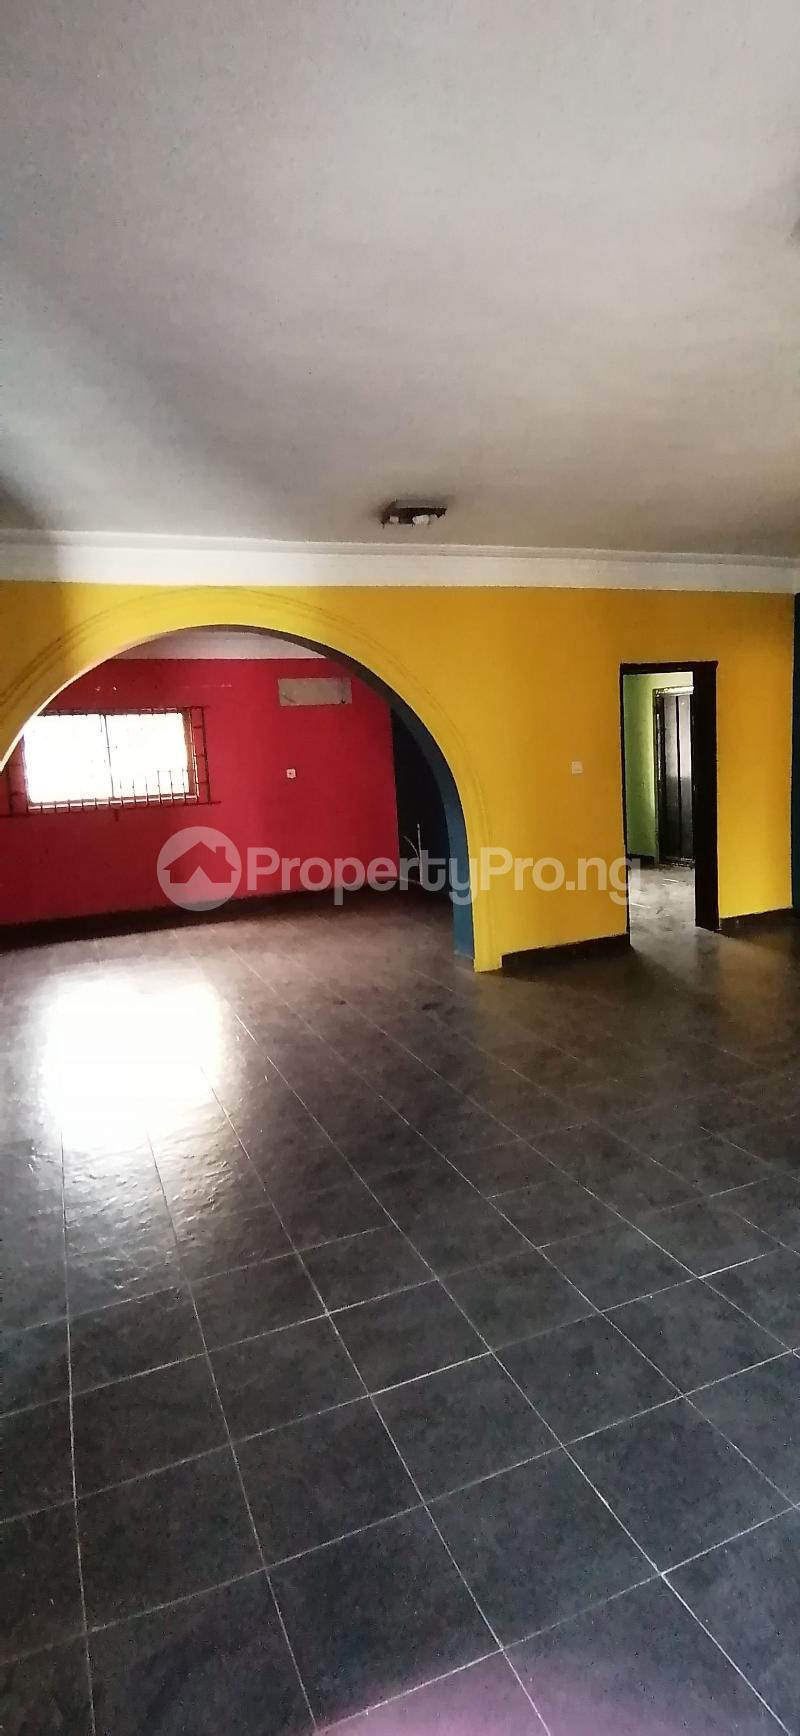 7 bedroom Detached Duplex House for rent Chief Augustine Anozie Lekki Phase 1 Lekki Lagos - 10